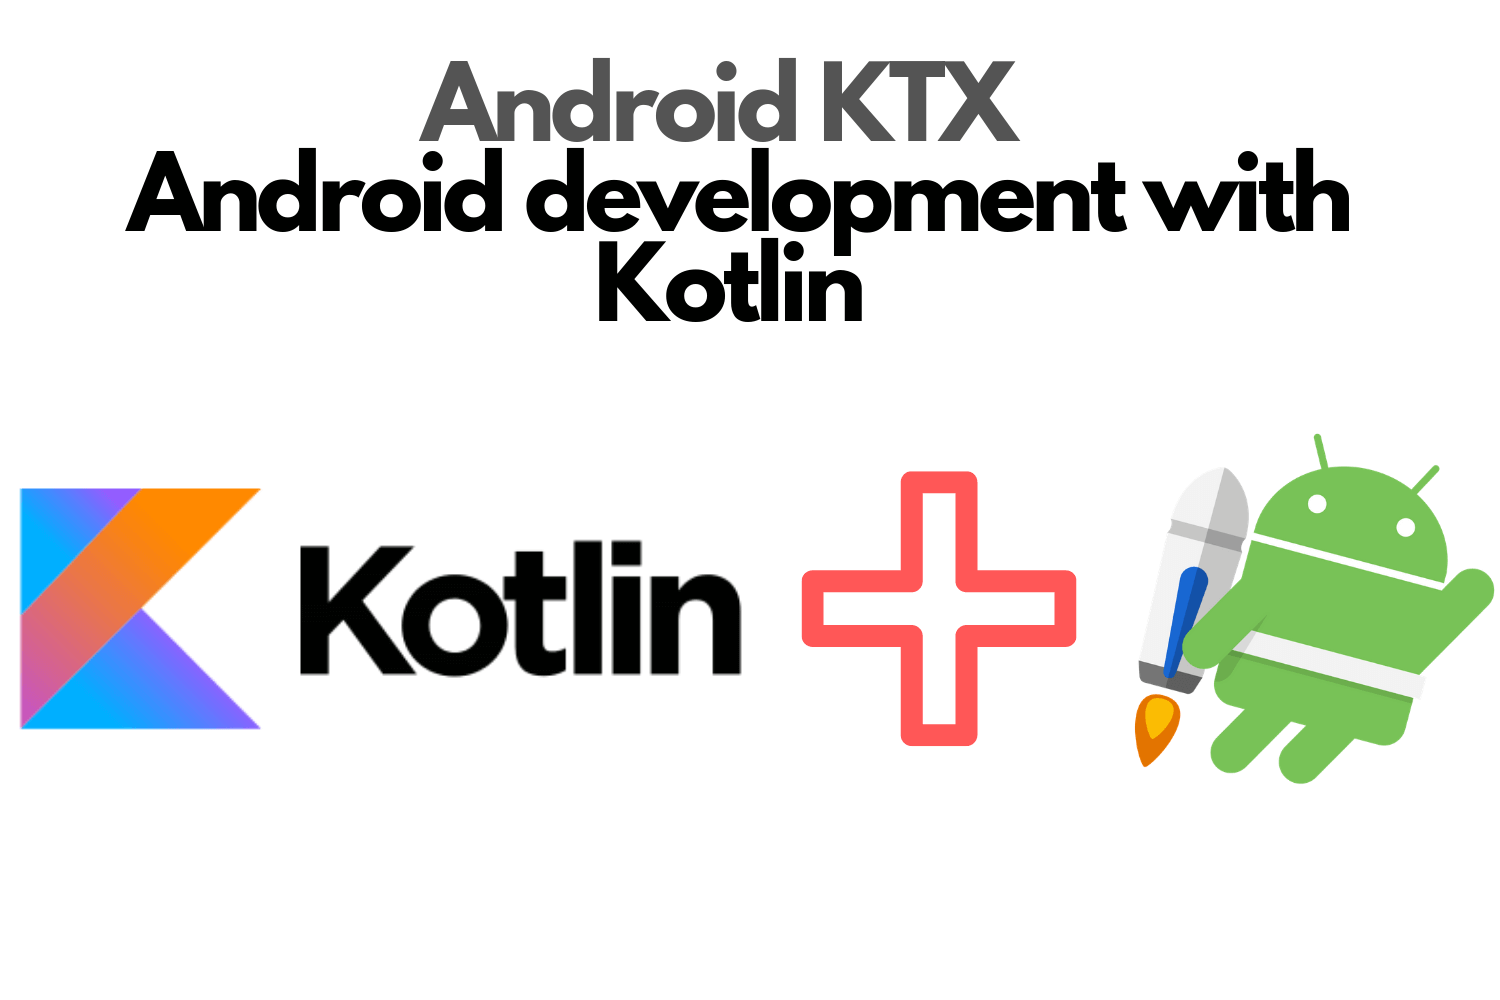 Android KTX - Android development with Kotlin